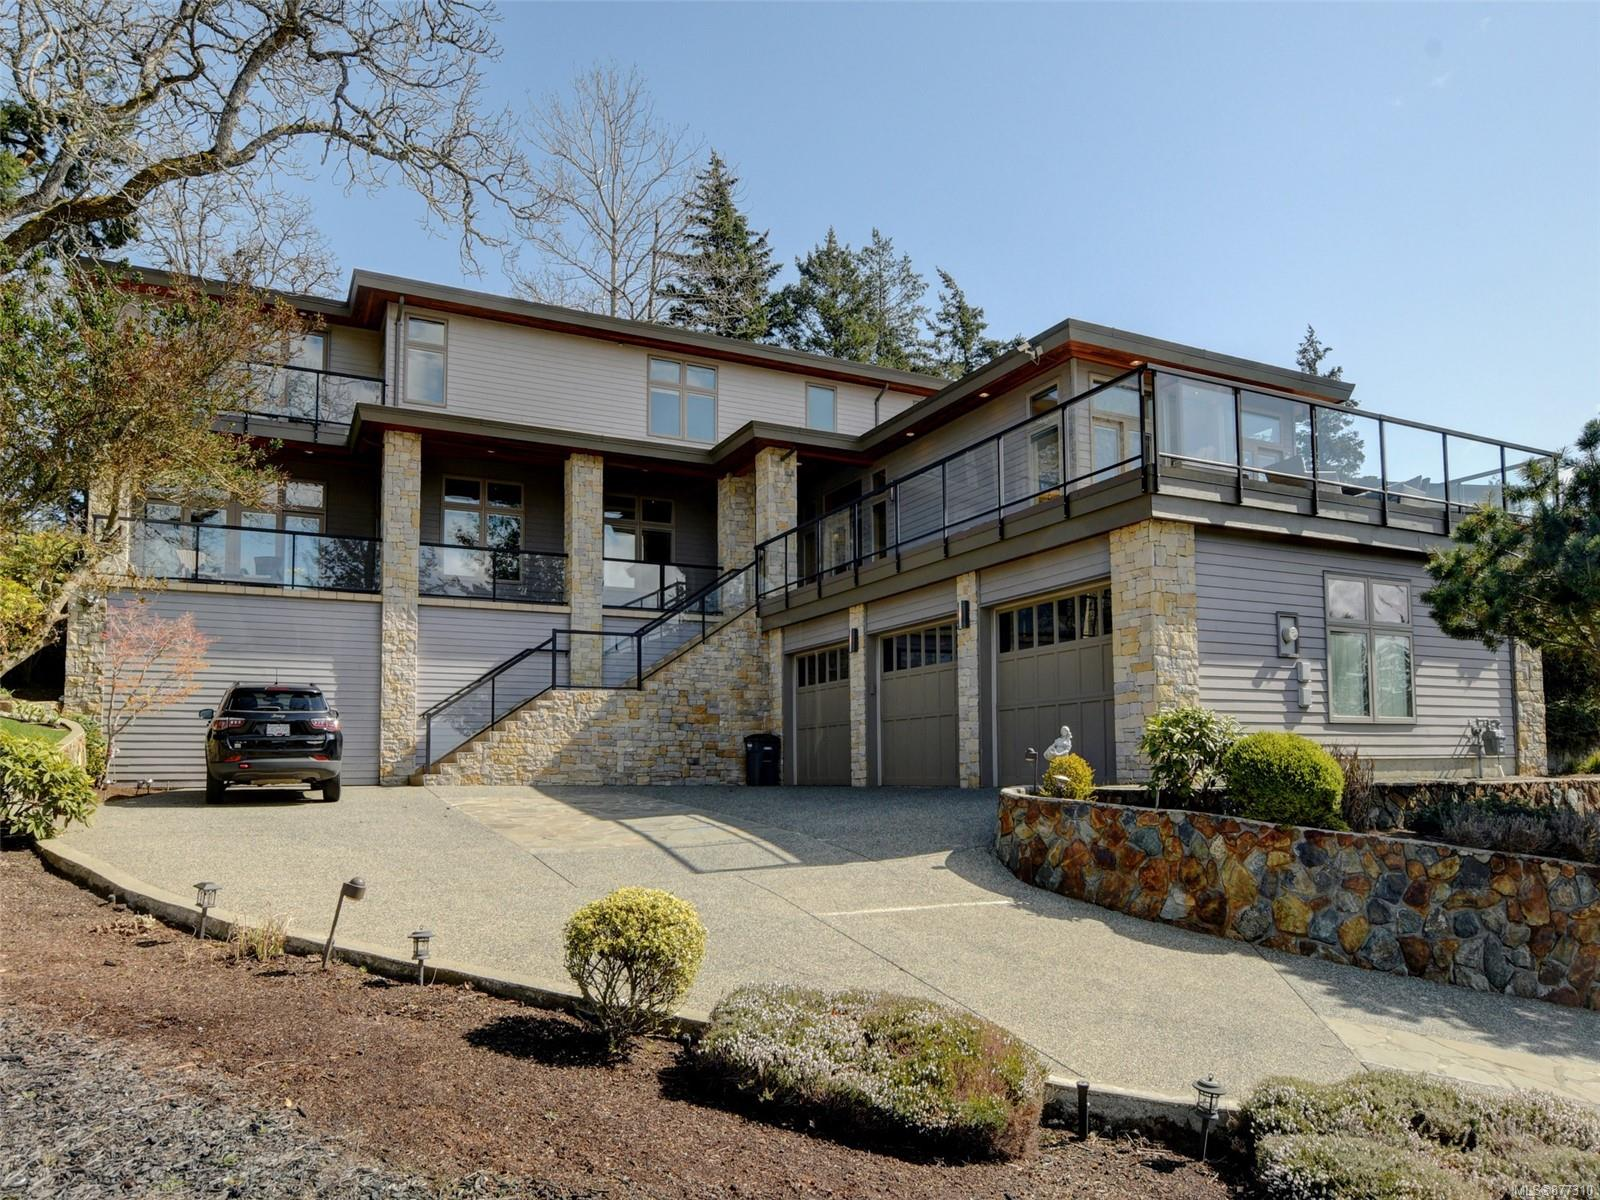 This architecturally designed home situated on a 0.55-acre lot offers over 7,386 SqFt with plenty of seating to soak in mountain, city & distance ocean view in sought-after Broadmead. Custom-built Luxurious home with impeccable quality in finishings and design, modern lighting, Elevator, 2-sided fireplace, radiant floor heating, built-in sound system, air exchange system, an abundance of windows to enjoy the views. The main level offers one guest room with ensuite, office, formal dining and living areas, an open-concept kitchen with adjacent family room opening to the backyard deck, Patio. Media room, Maple wood floors, electric remote blinds. Living space flows easily to extensive decks surrounded by beautifully maintained gardens, pond.  Upstairs offers 2 master suites &  3 bedrooms with ensuite.  the lower level features a Games room, Gym, Rec room, Steam room, triple garage. Prime location, close to Broadmead Village, Commonwealth, Elk/Beaver Lake. You'll surely be impressed!